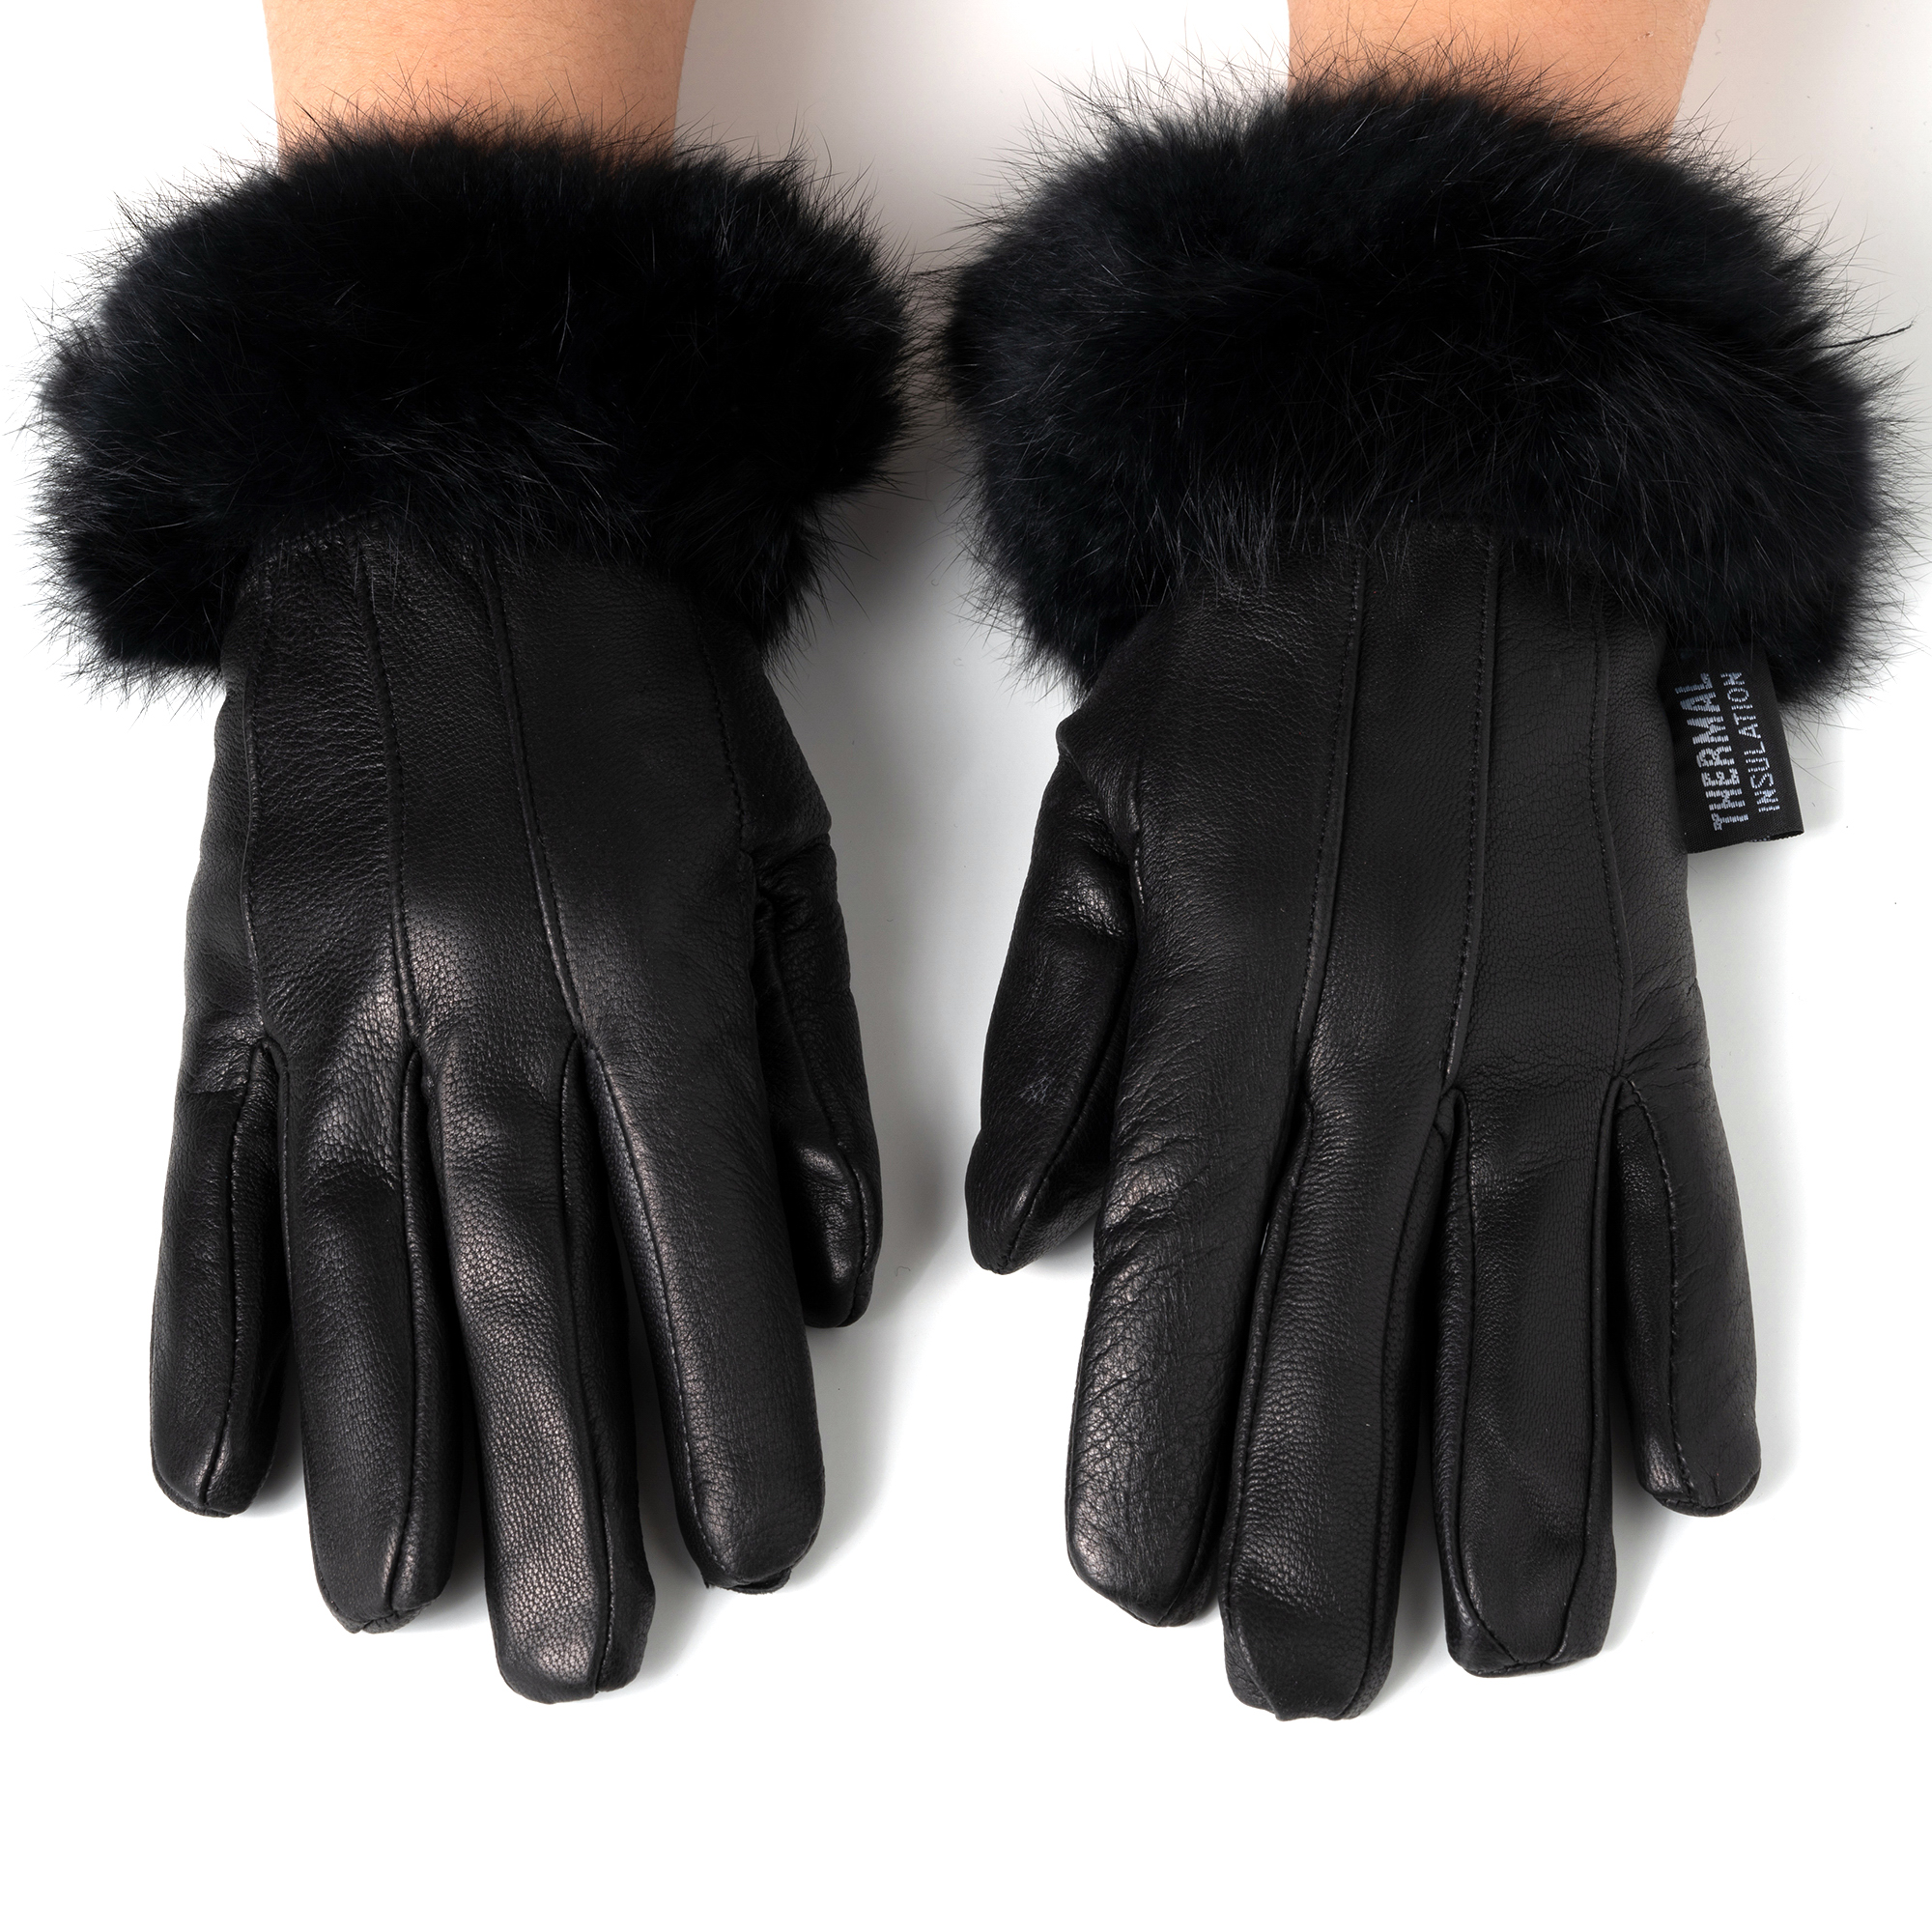 Alpine-Swiss-Womens-Dressy-Gloves-Genuine-Leather-Thermal-Lining-Fur-Trim-Cuff thumbnail 14